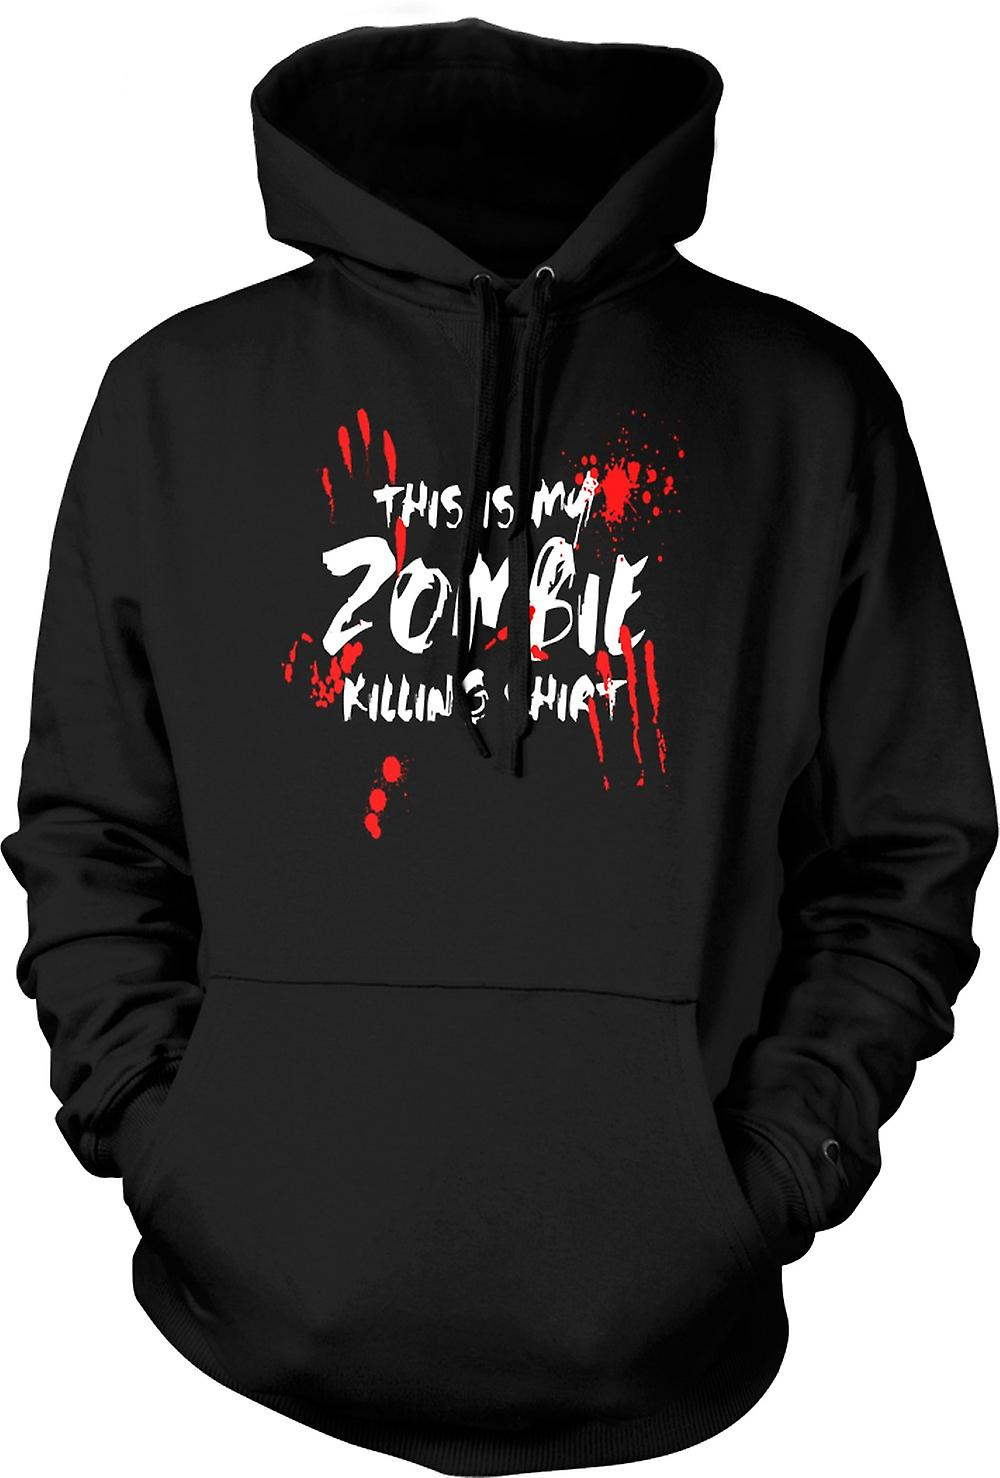 Mens Hoodie - This Is My Zombie Killing - Funny